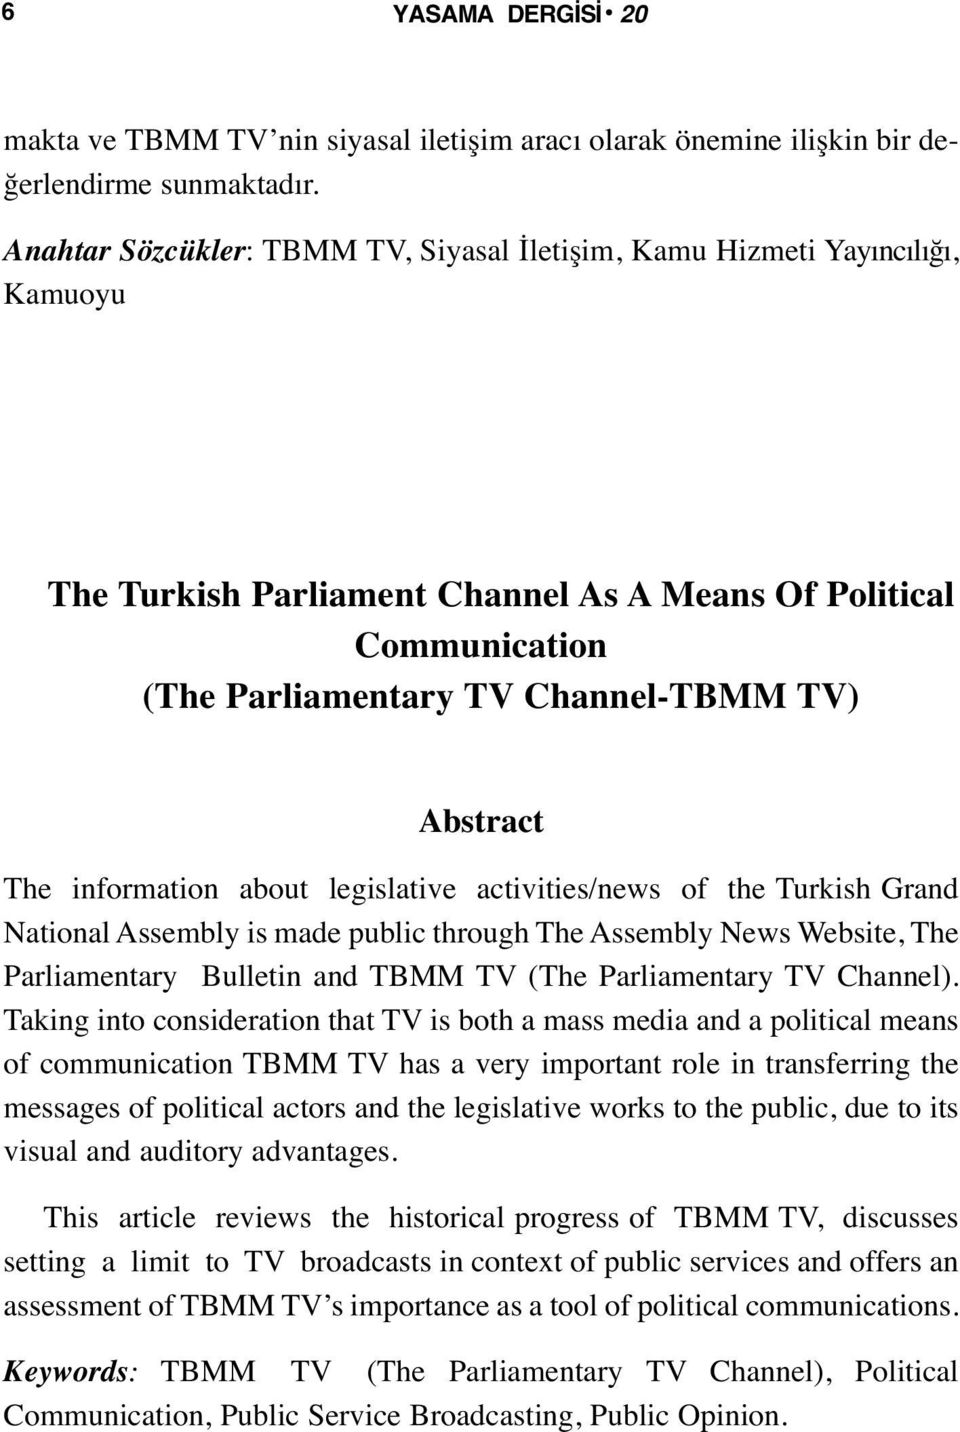 The information about legislative activities/news of the Turkish Grand National Assembly is made public through The Assembly News Website, The Parliamentary Bulletin and TBMM TV (The Parliamentary TV